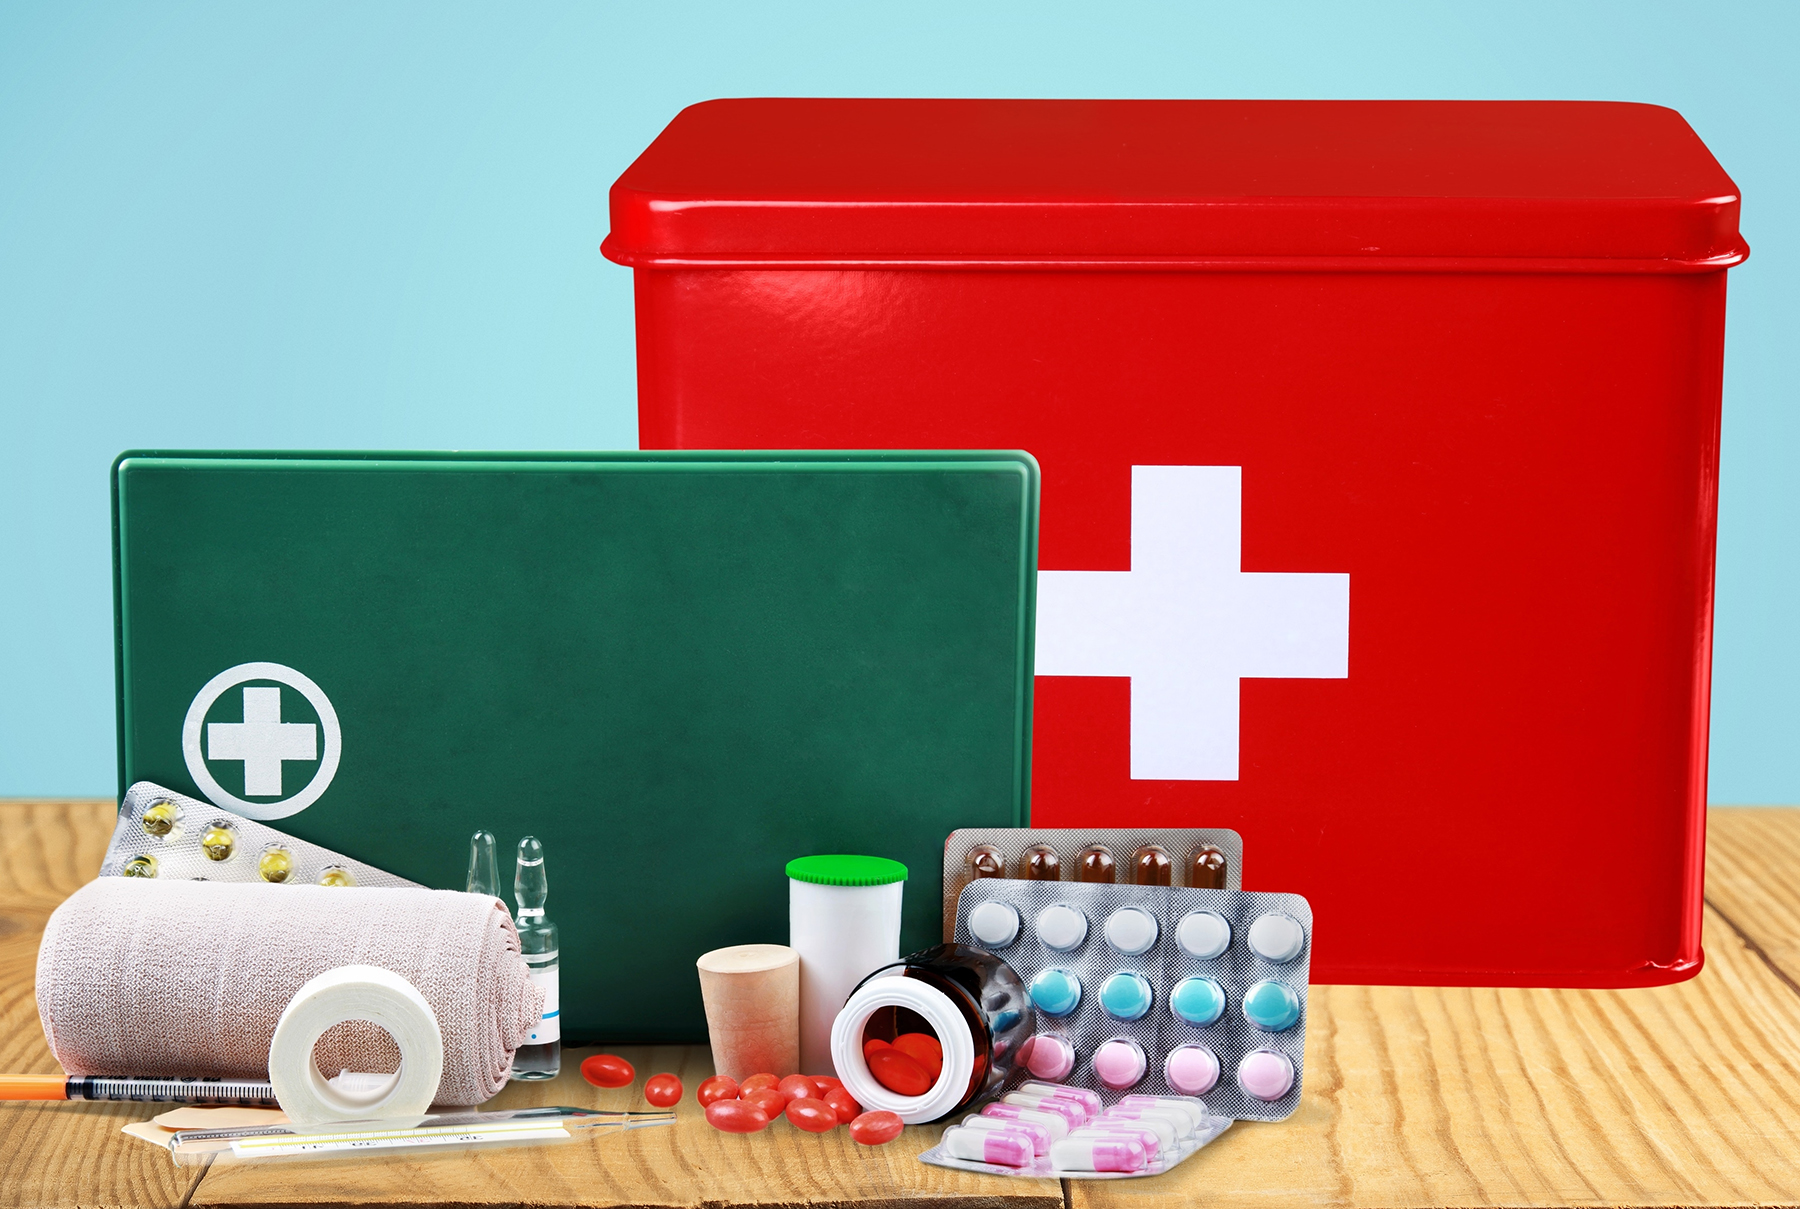 First Aid Kit and Medicine